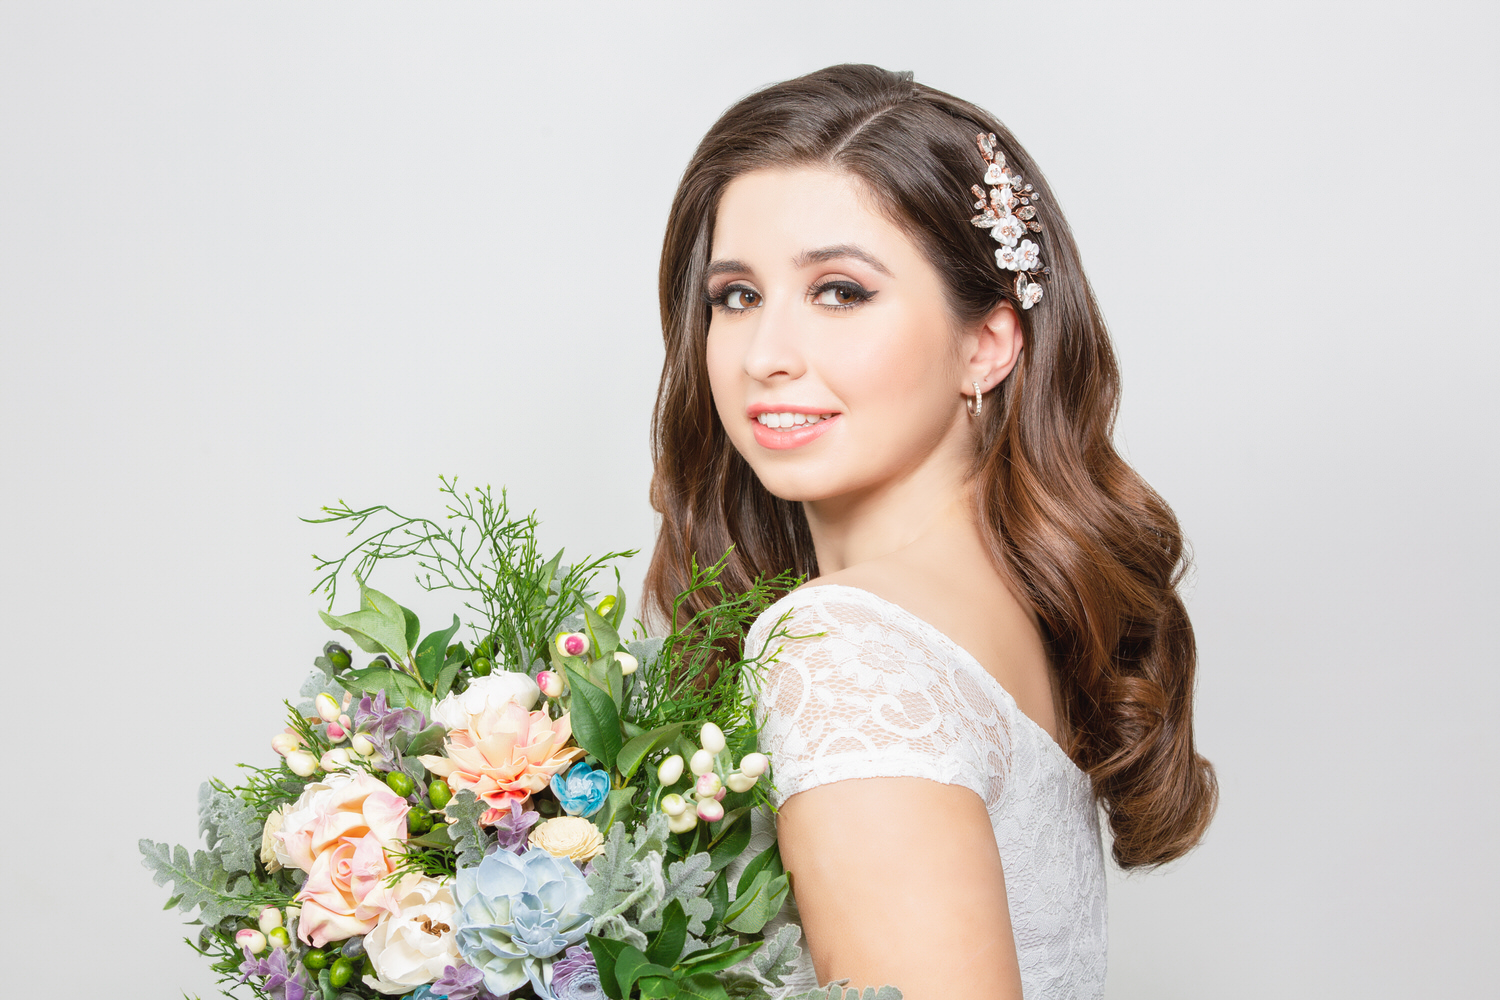 Brunette haired model holding flowers with white background